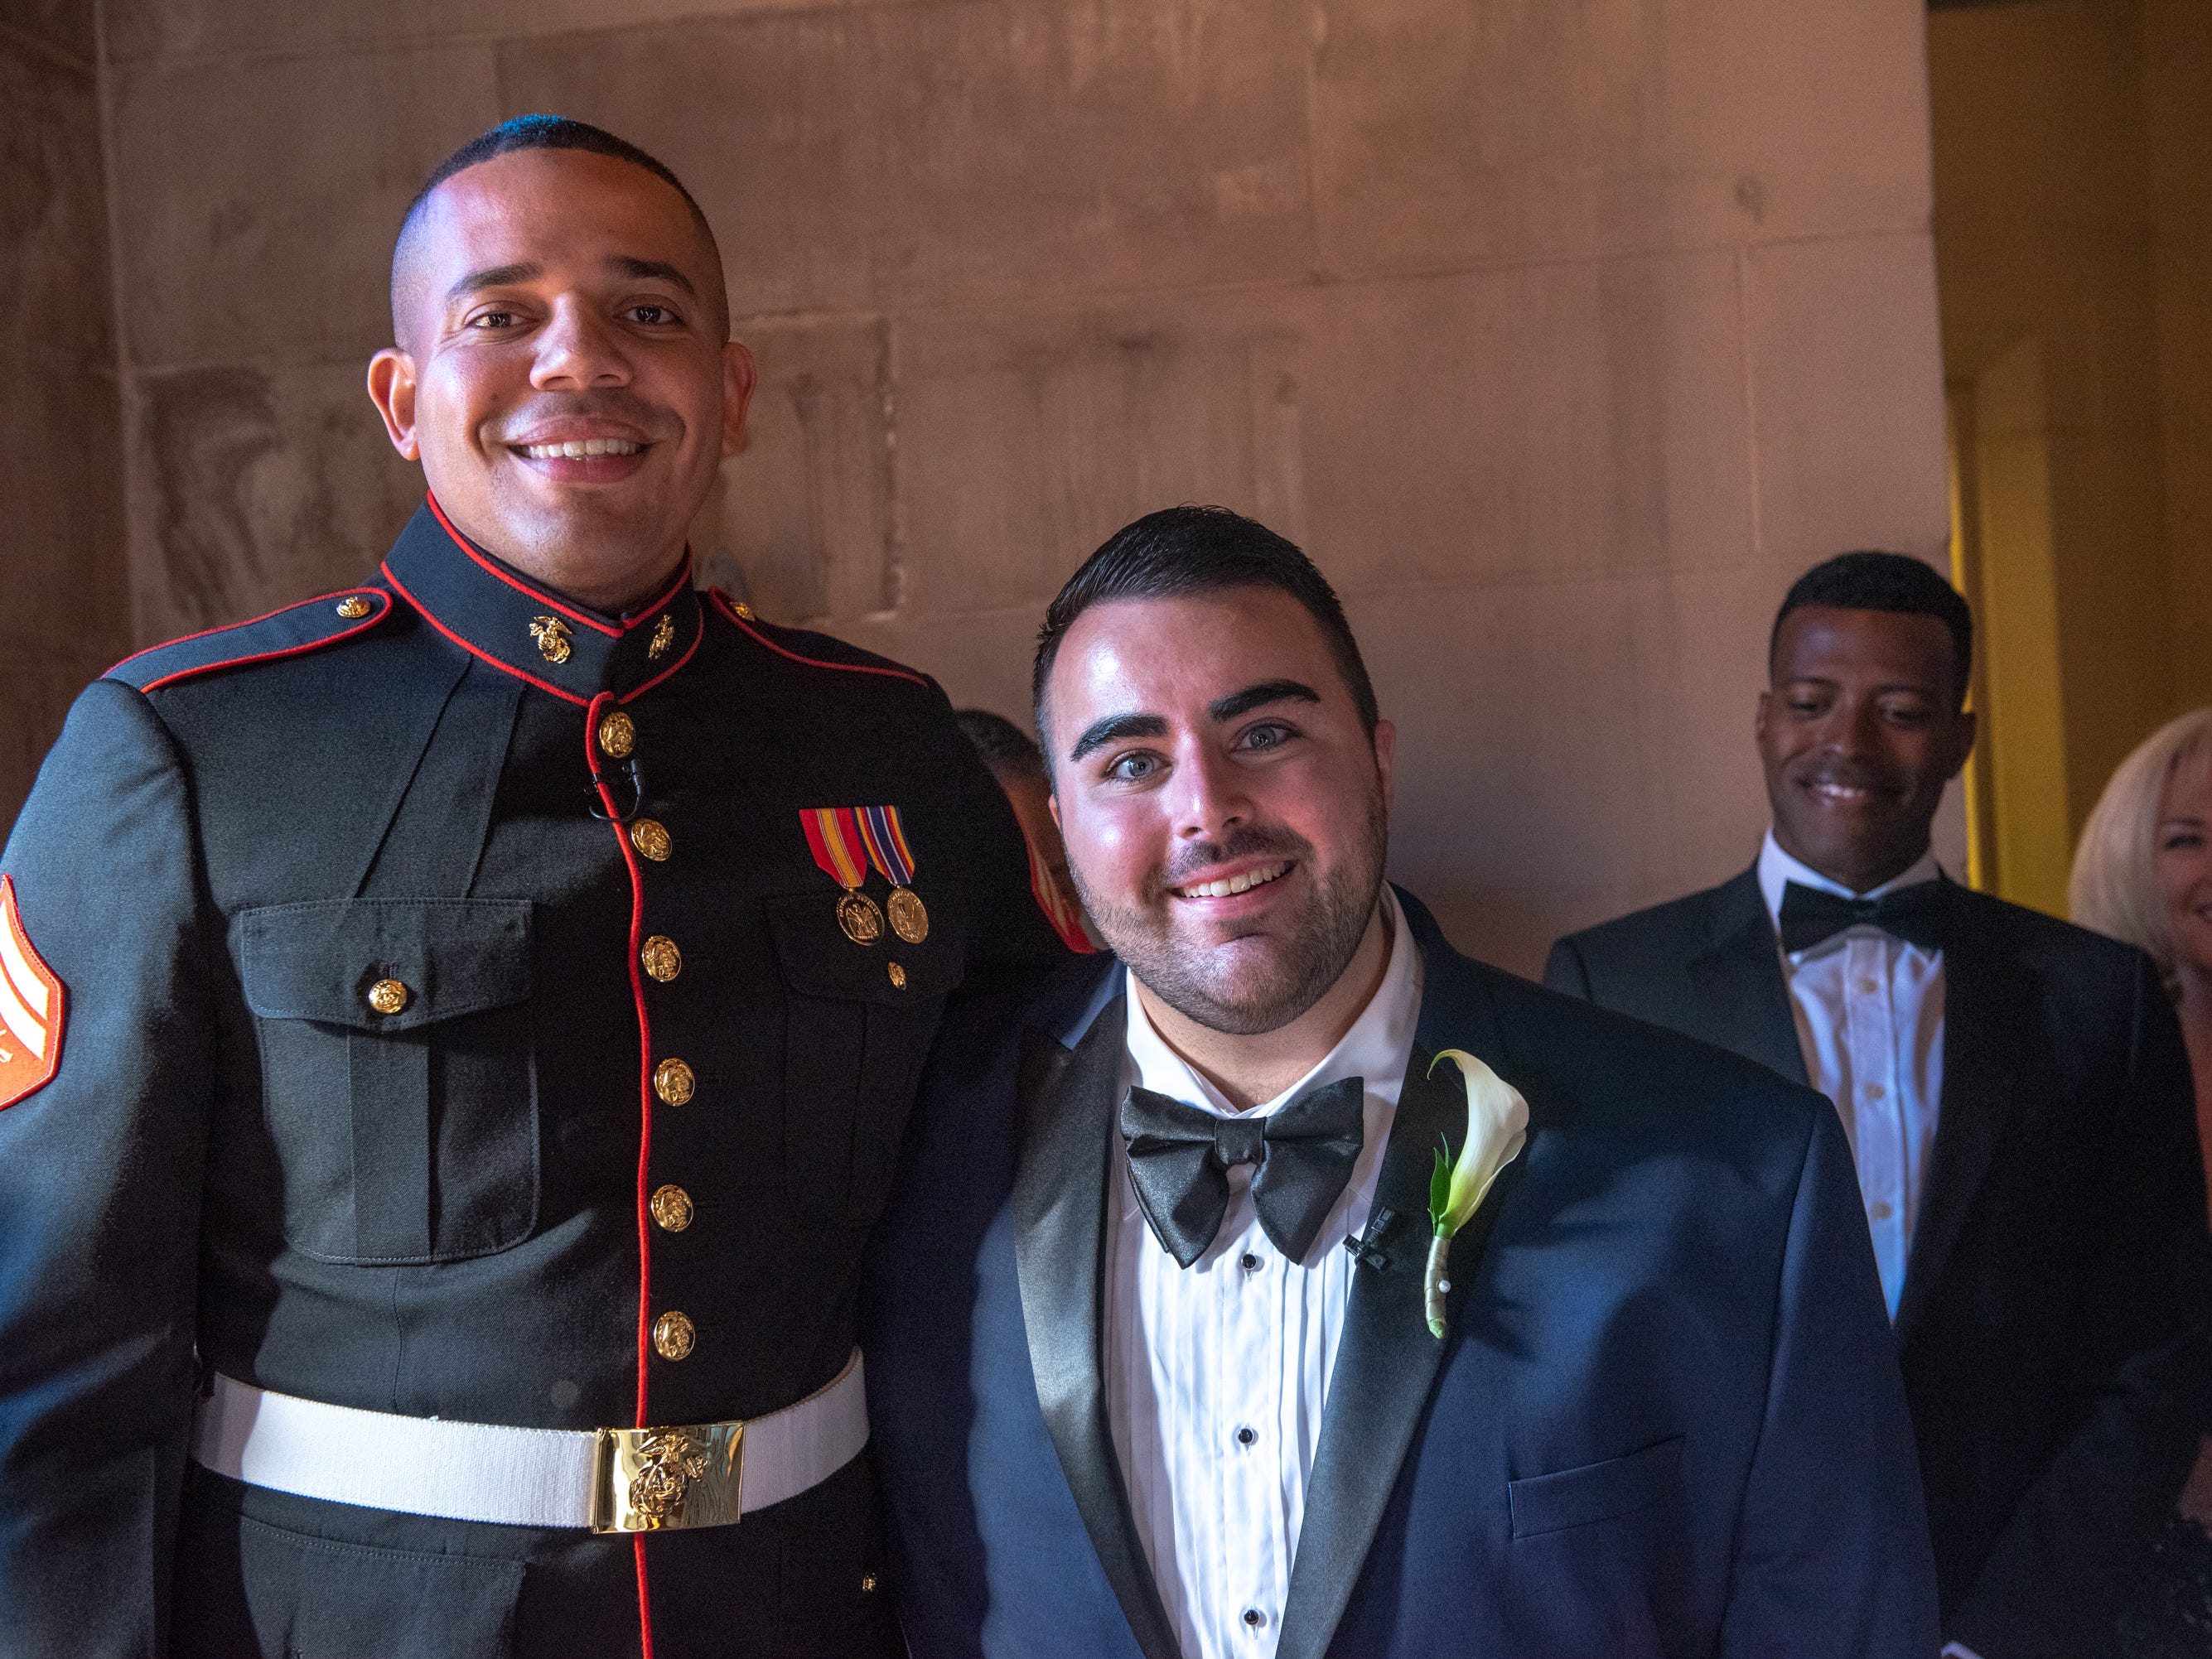 Christian Fuscarino, (RIGHT) Executive Director of Garden State Equality, and U.S. Marines Corporal Aaron Williams  (left) were married at Trinity Church in Asbury Park on Sunday, November 11, 2018.